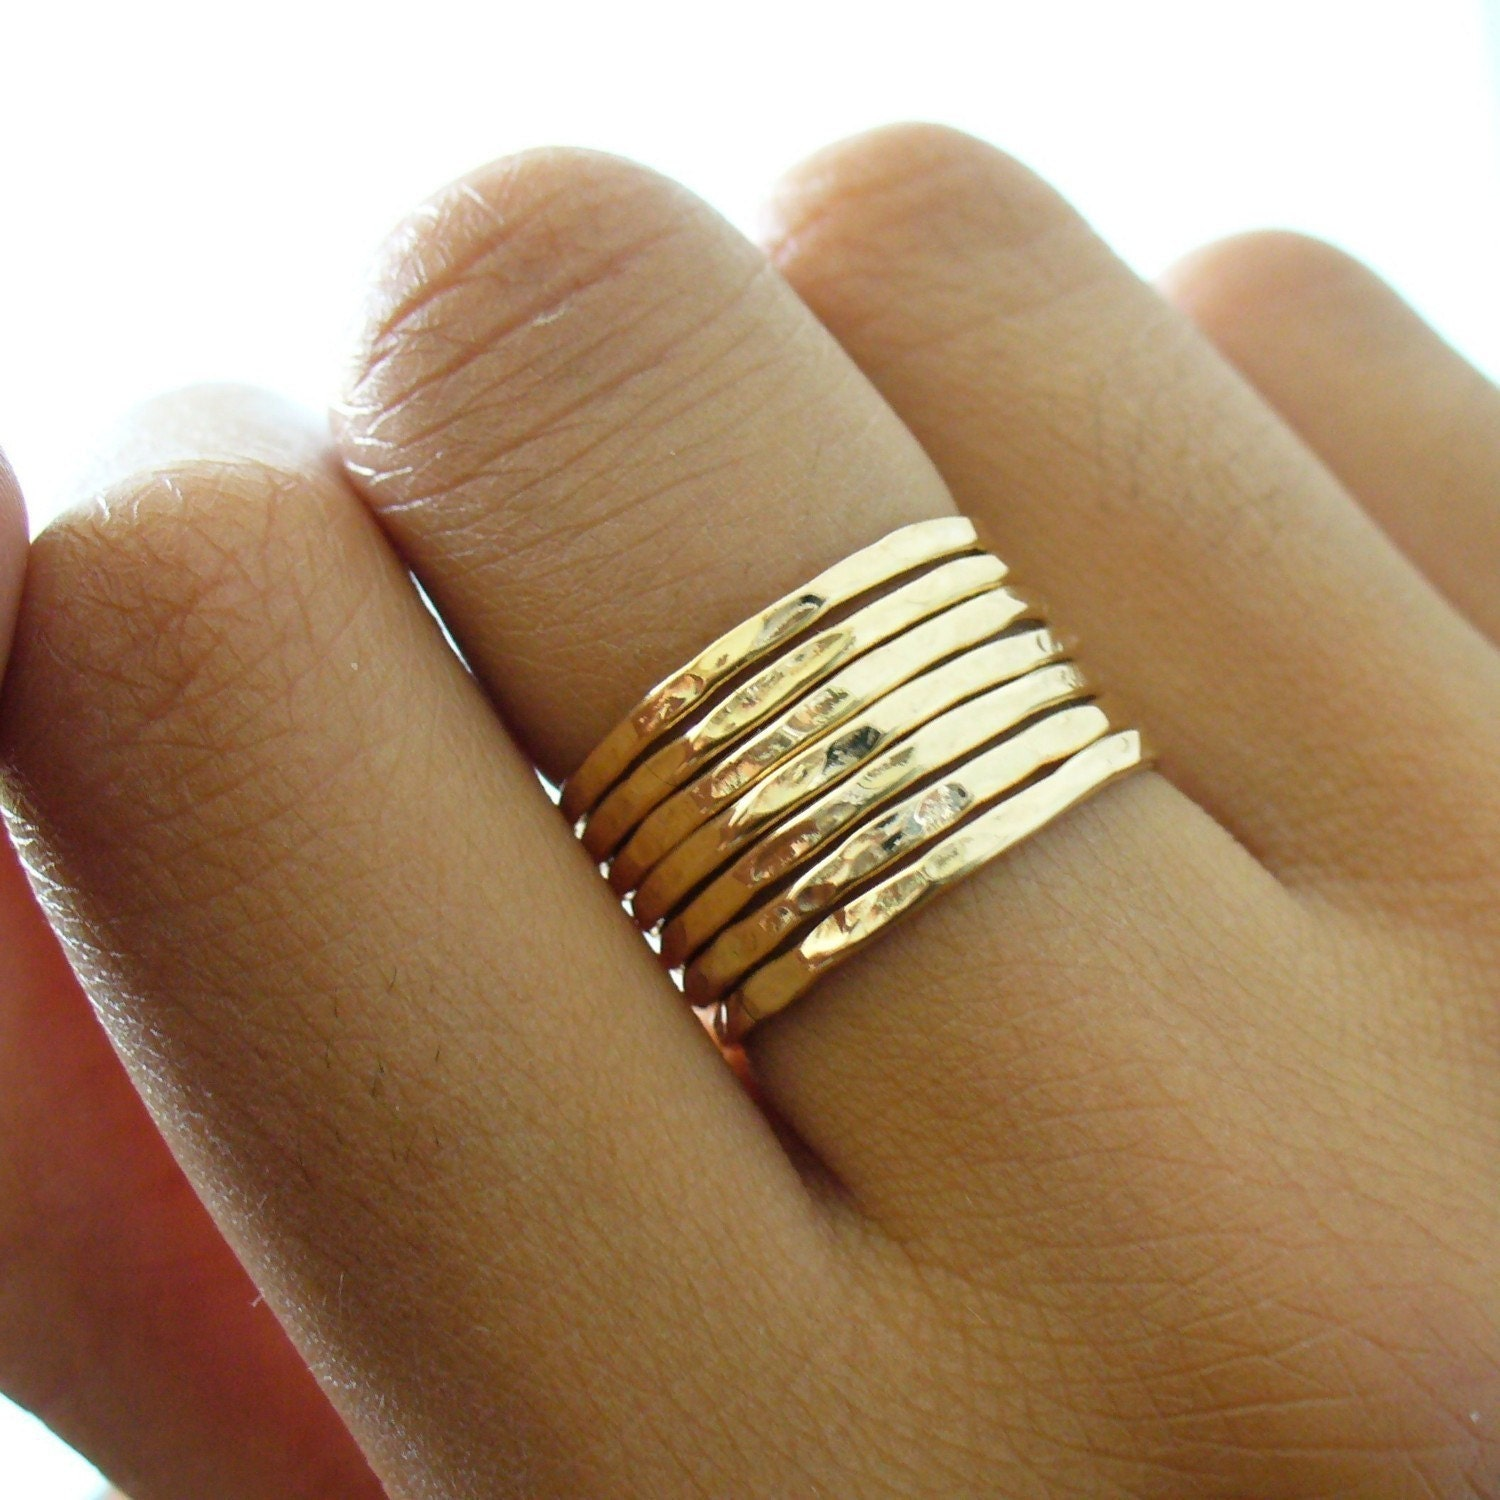 Gold Stacking Rings: NOVICA, in association with National Geographic, invites you to discover Gold Stacking Rings at incredible prices handcrafted by talented artisans worldwide.